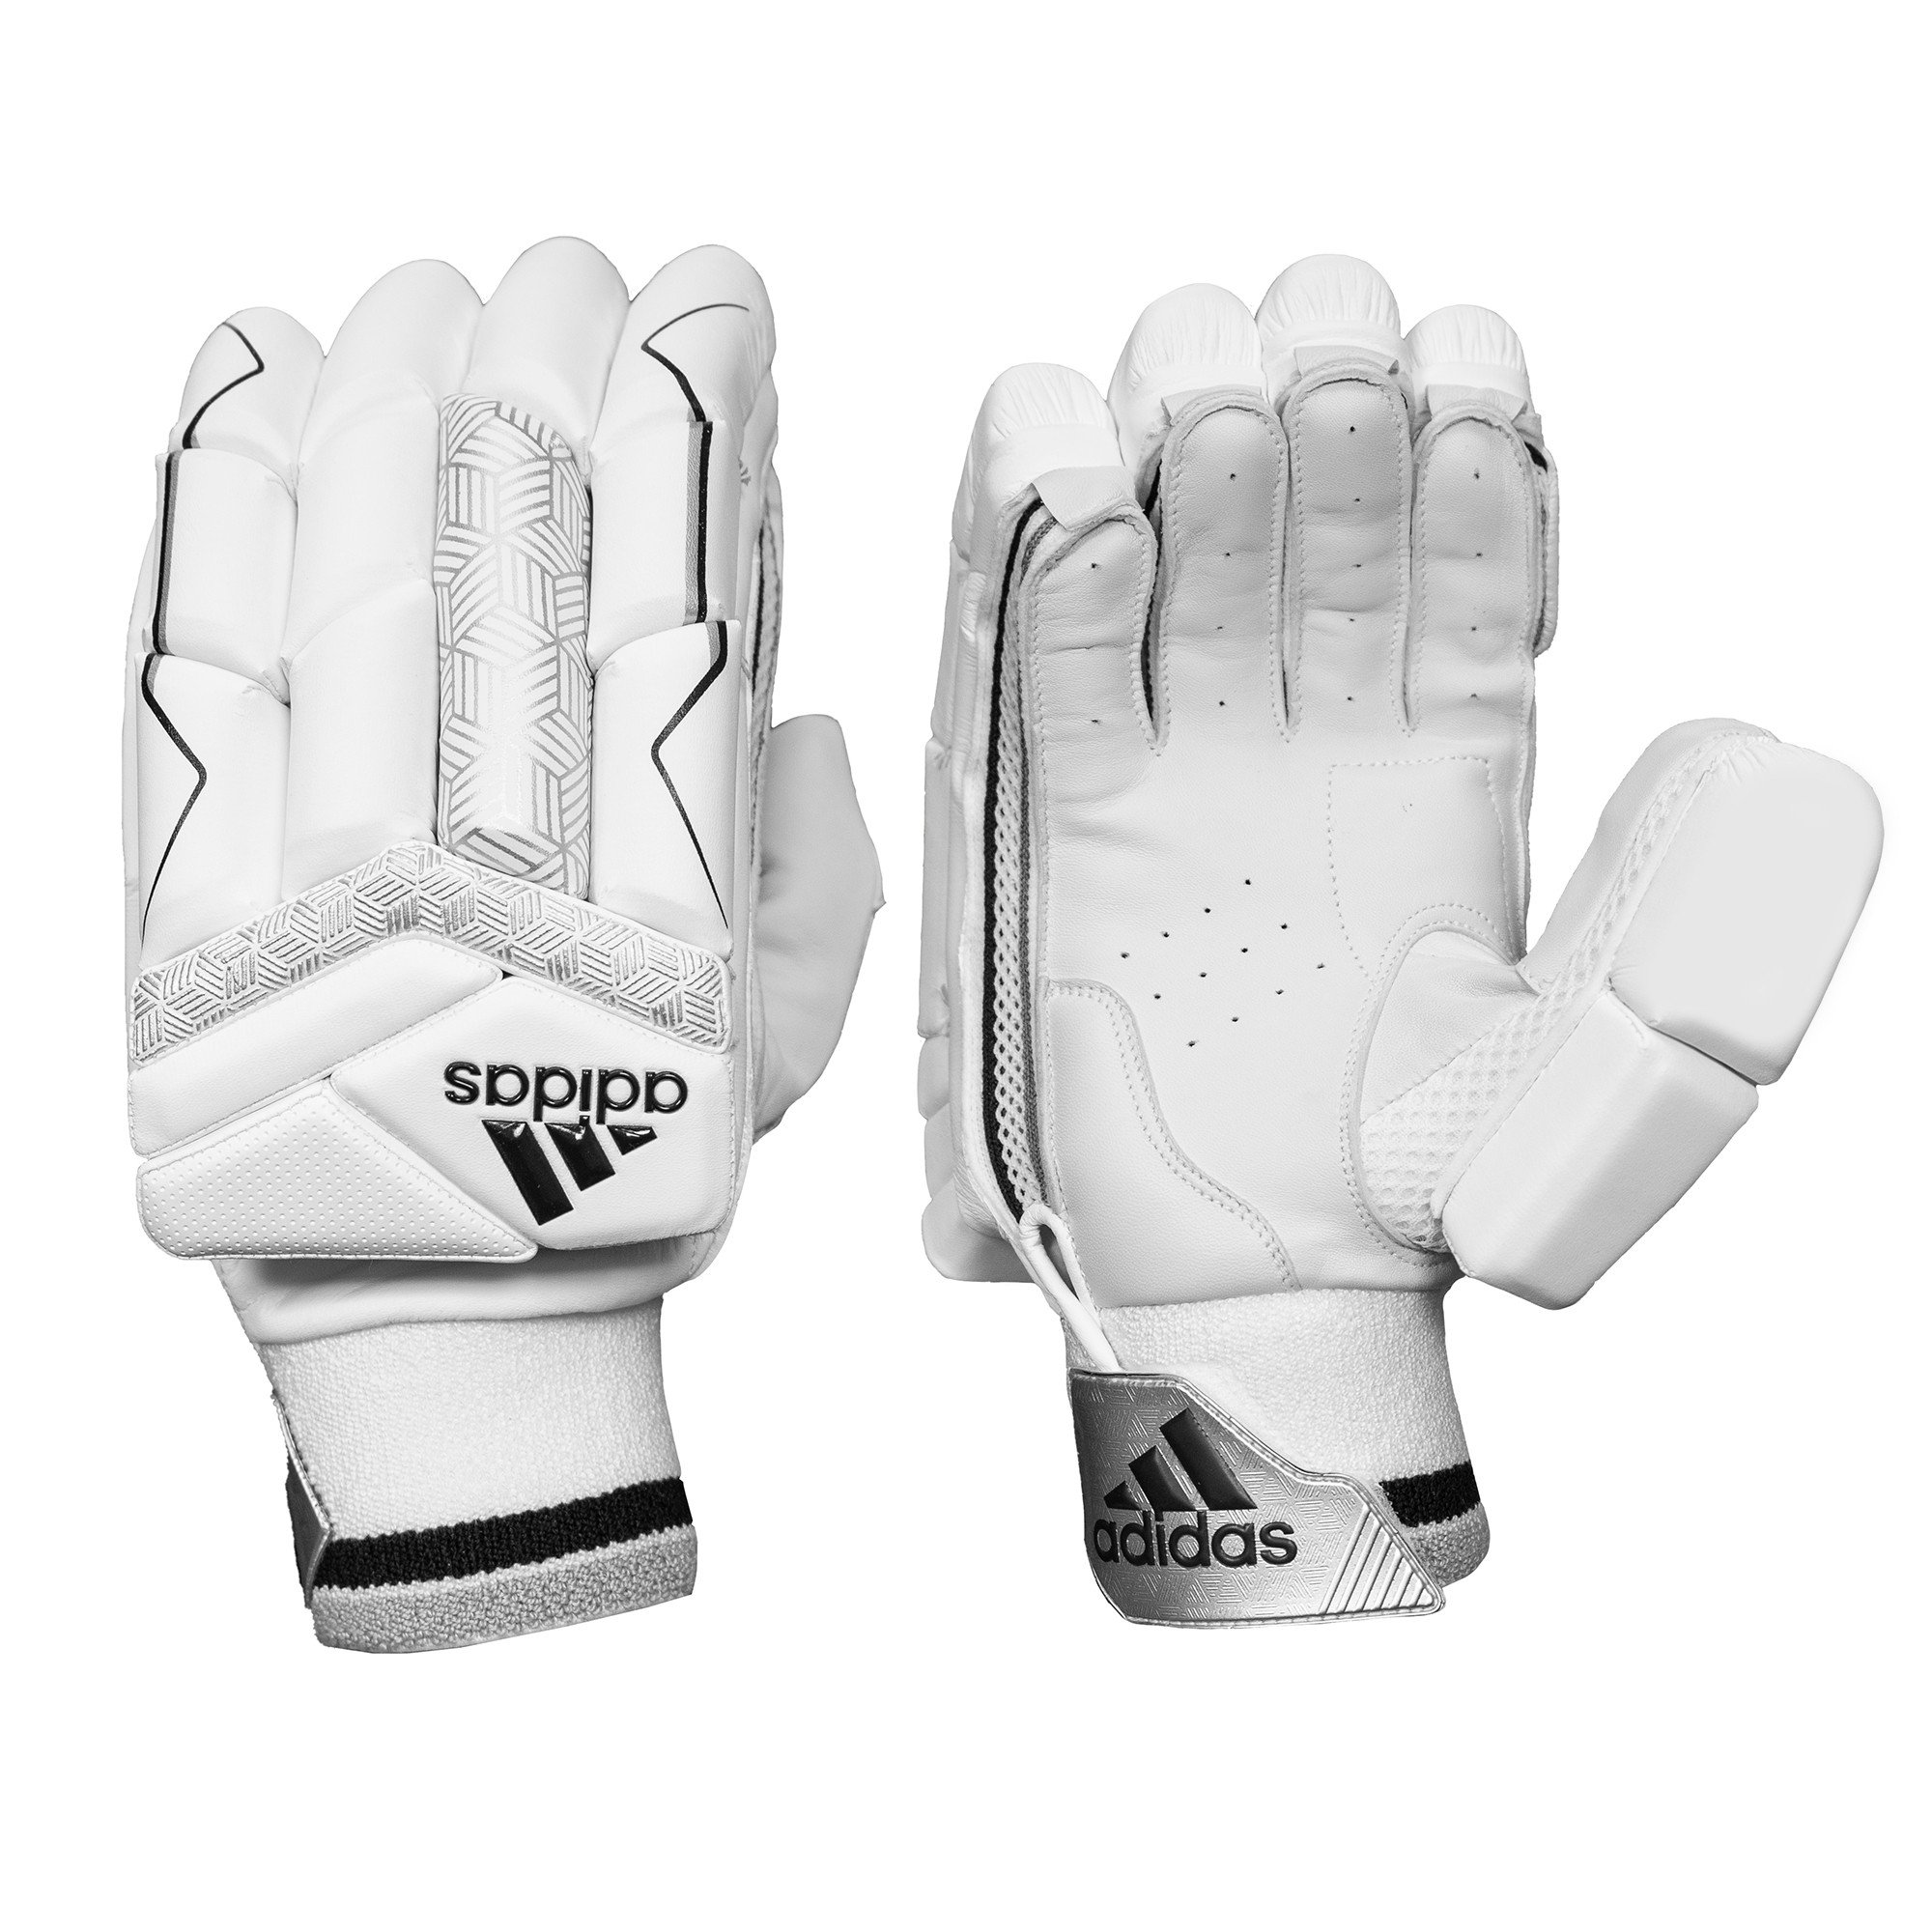 c1f32f77d 2019 Adidas XT 2.0 Batting Gloves. Previous; Next